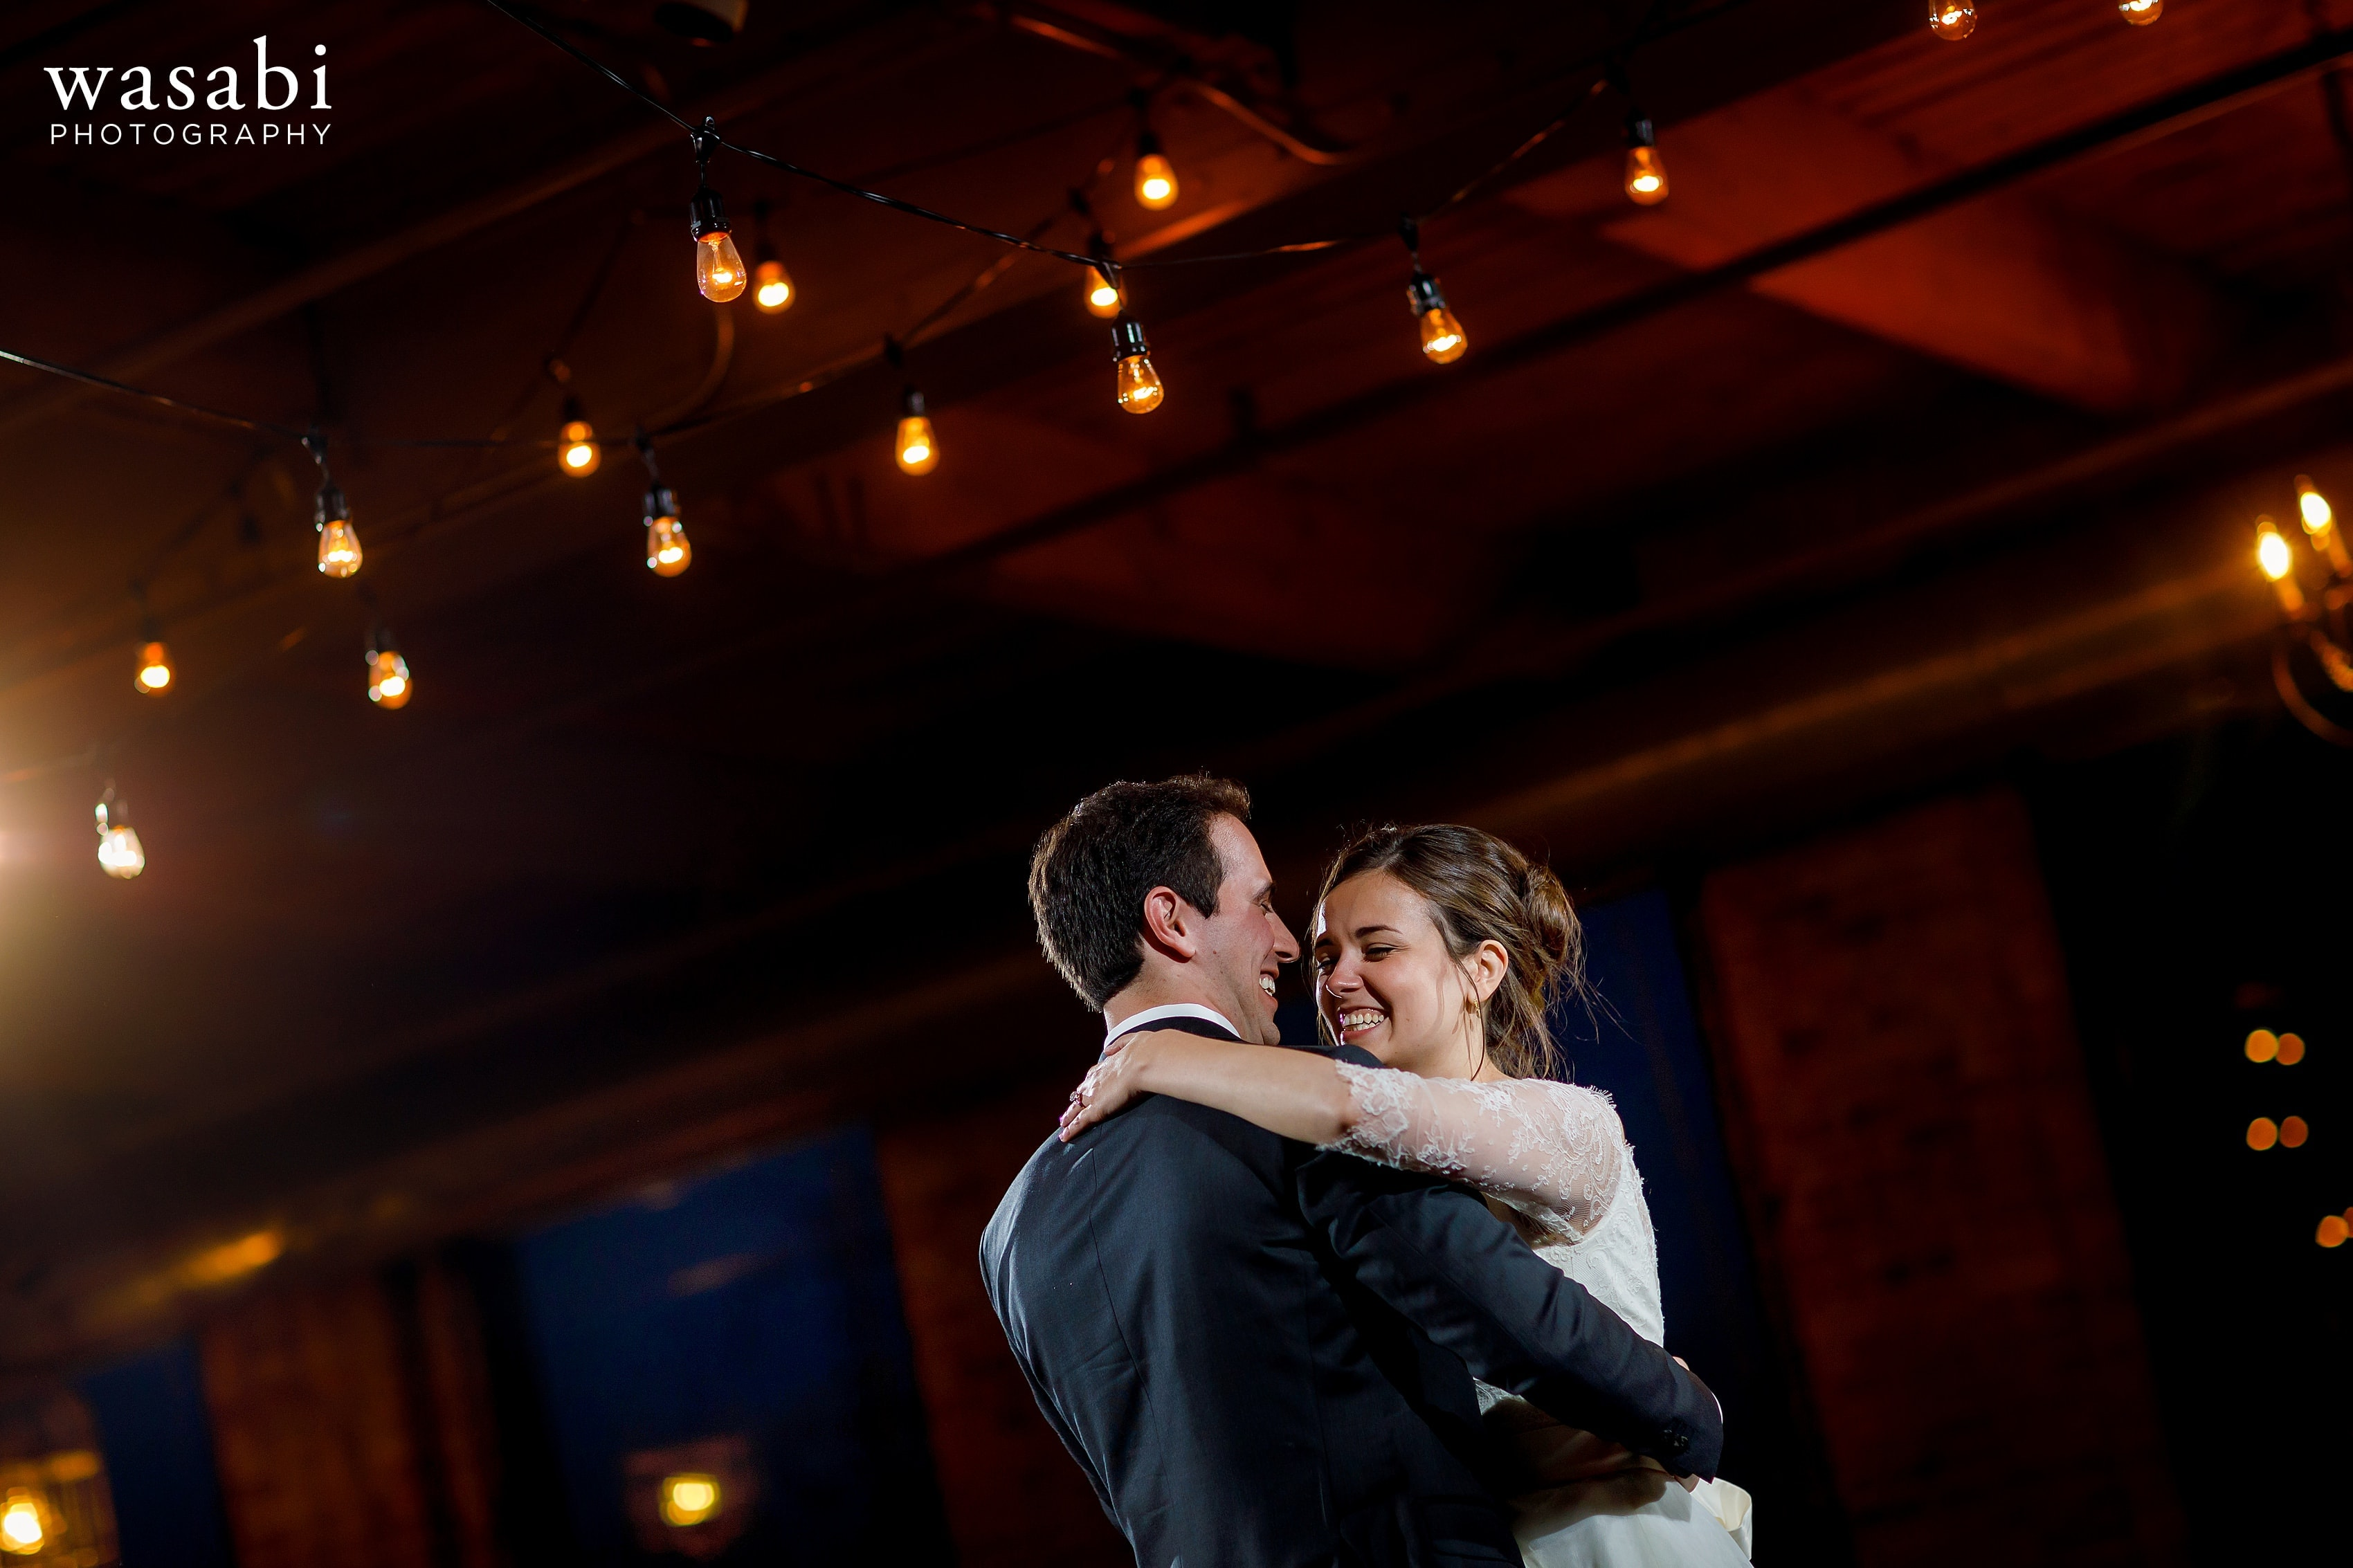 Zoe-&-Justin-share-a-first-dance-during-their-wedding-at-City-View-Loft-in-Chicago-29